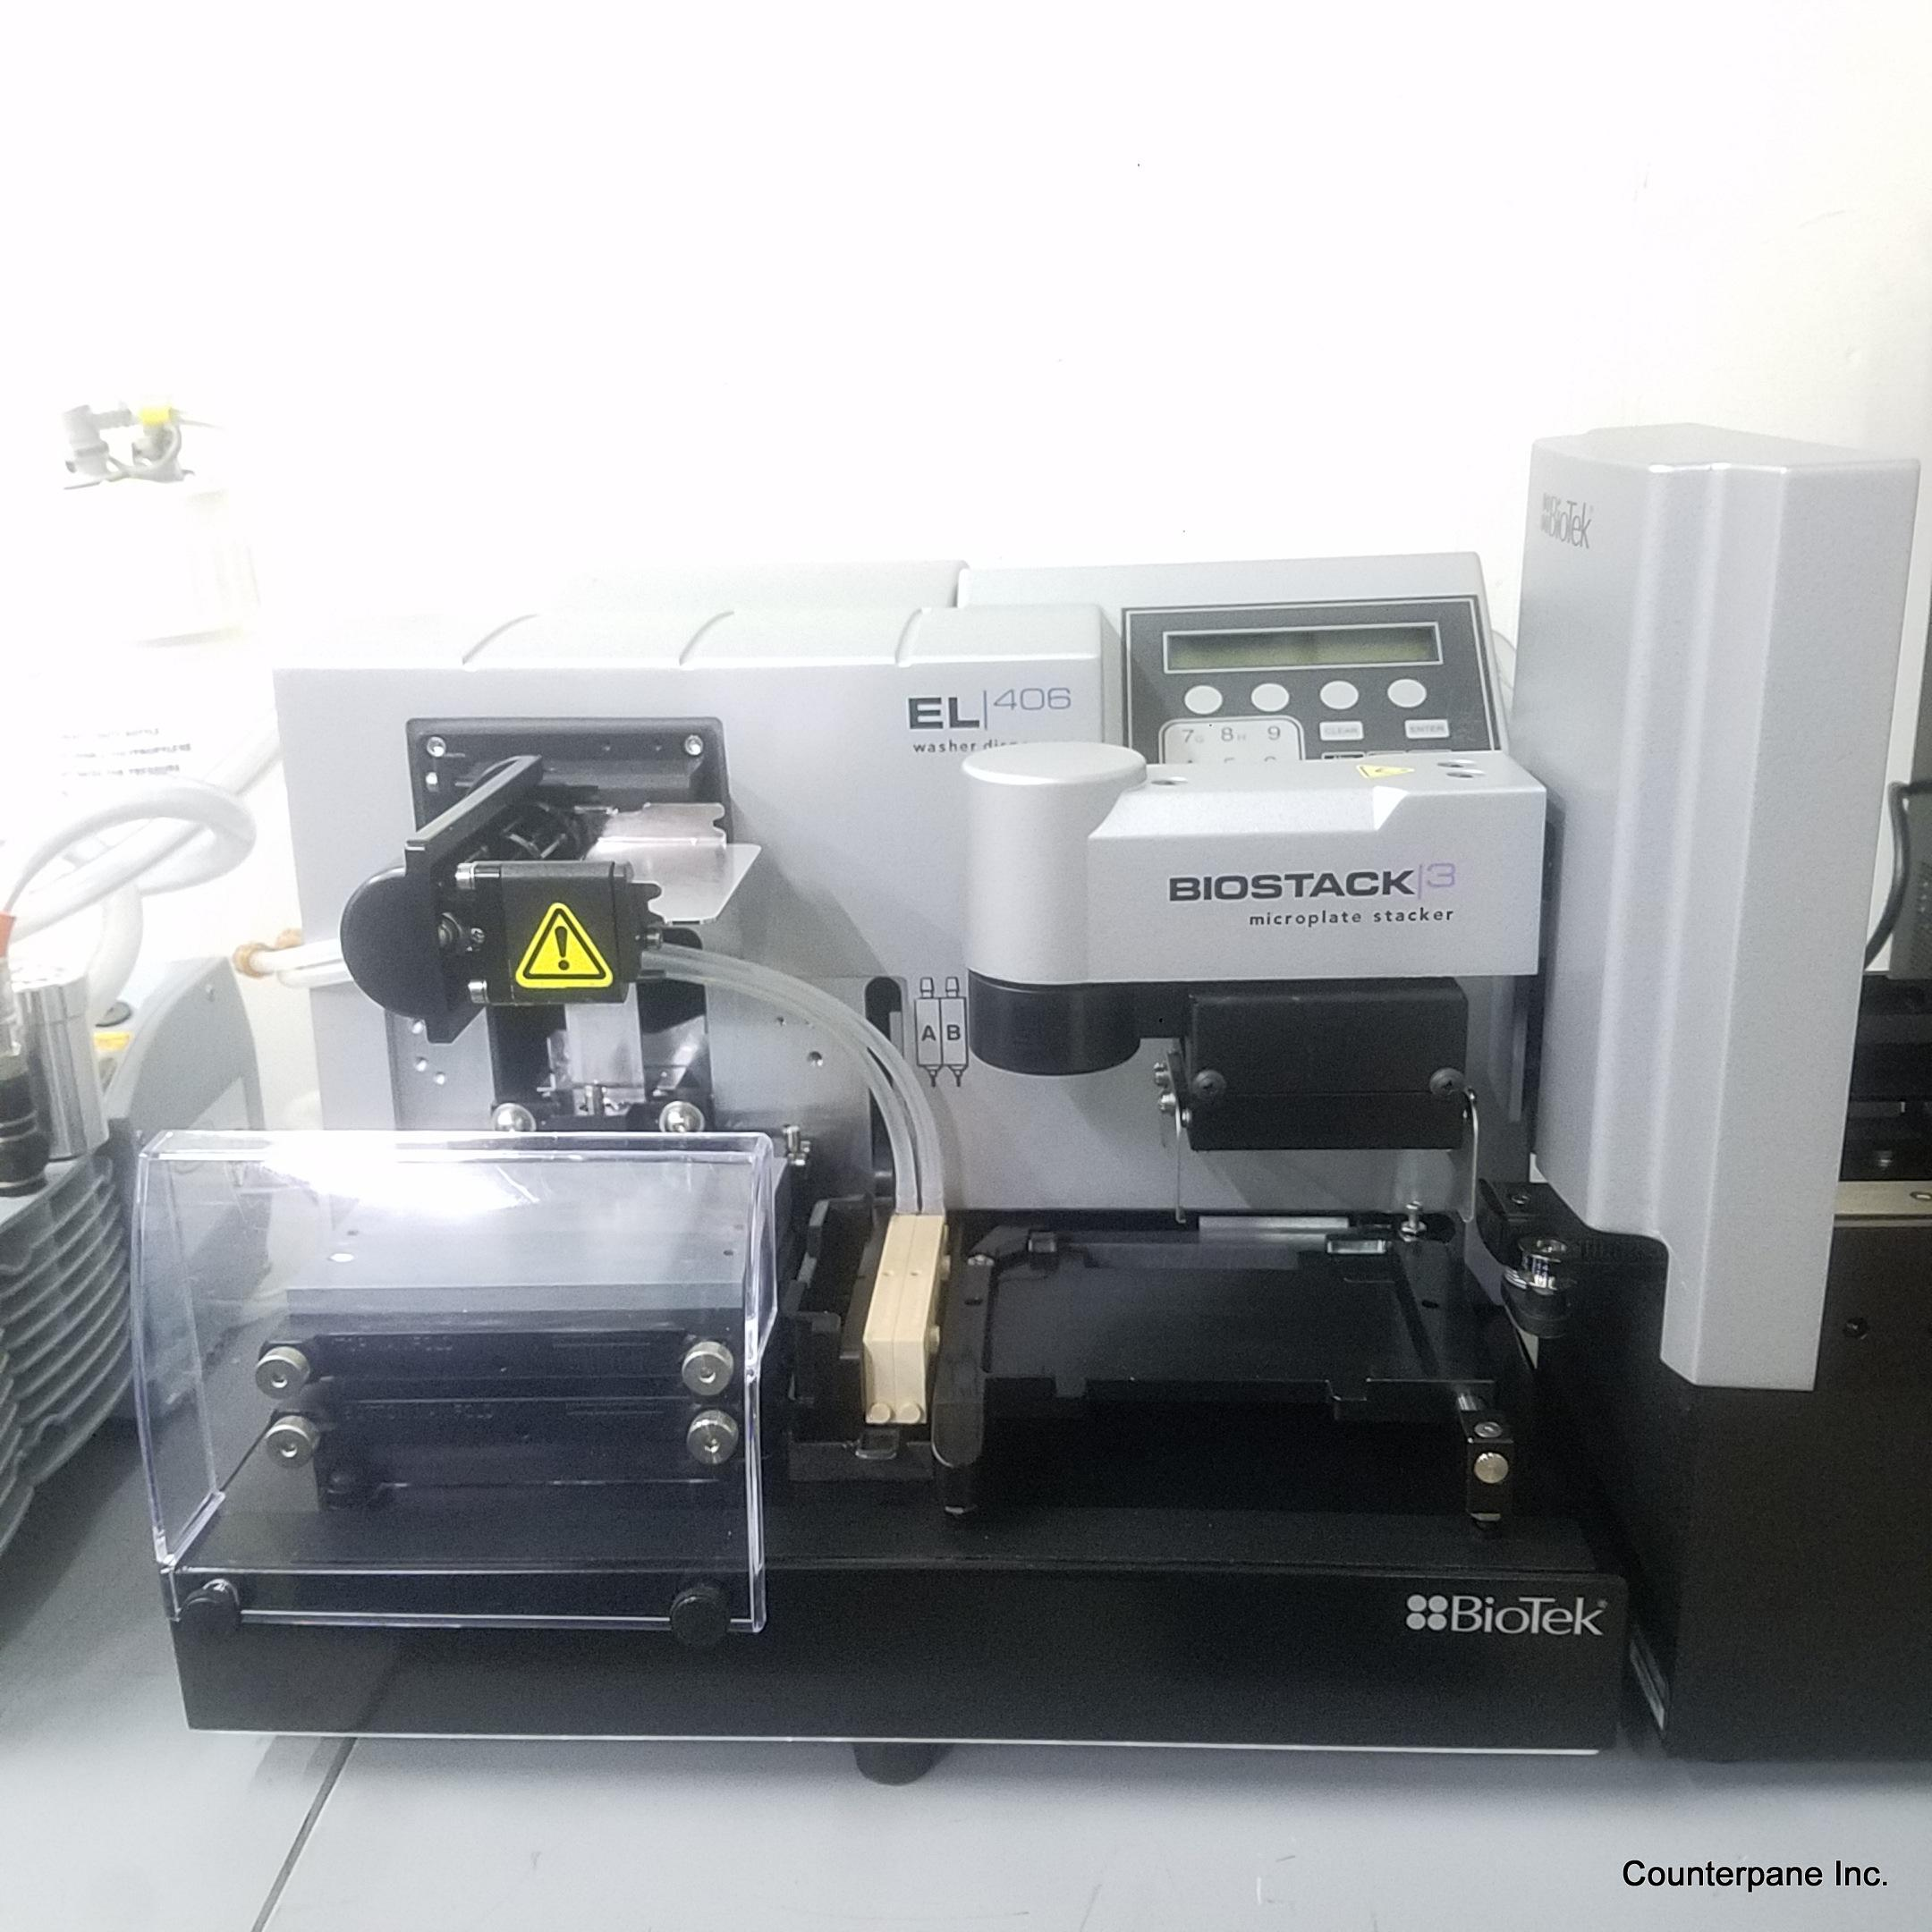 Biotek EL406 Reagent Dispenser w/BioStack3 (Year 2015)